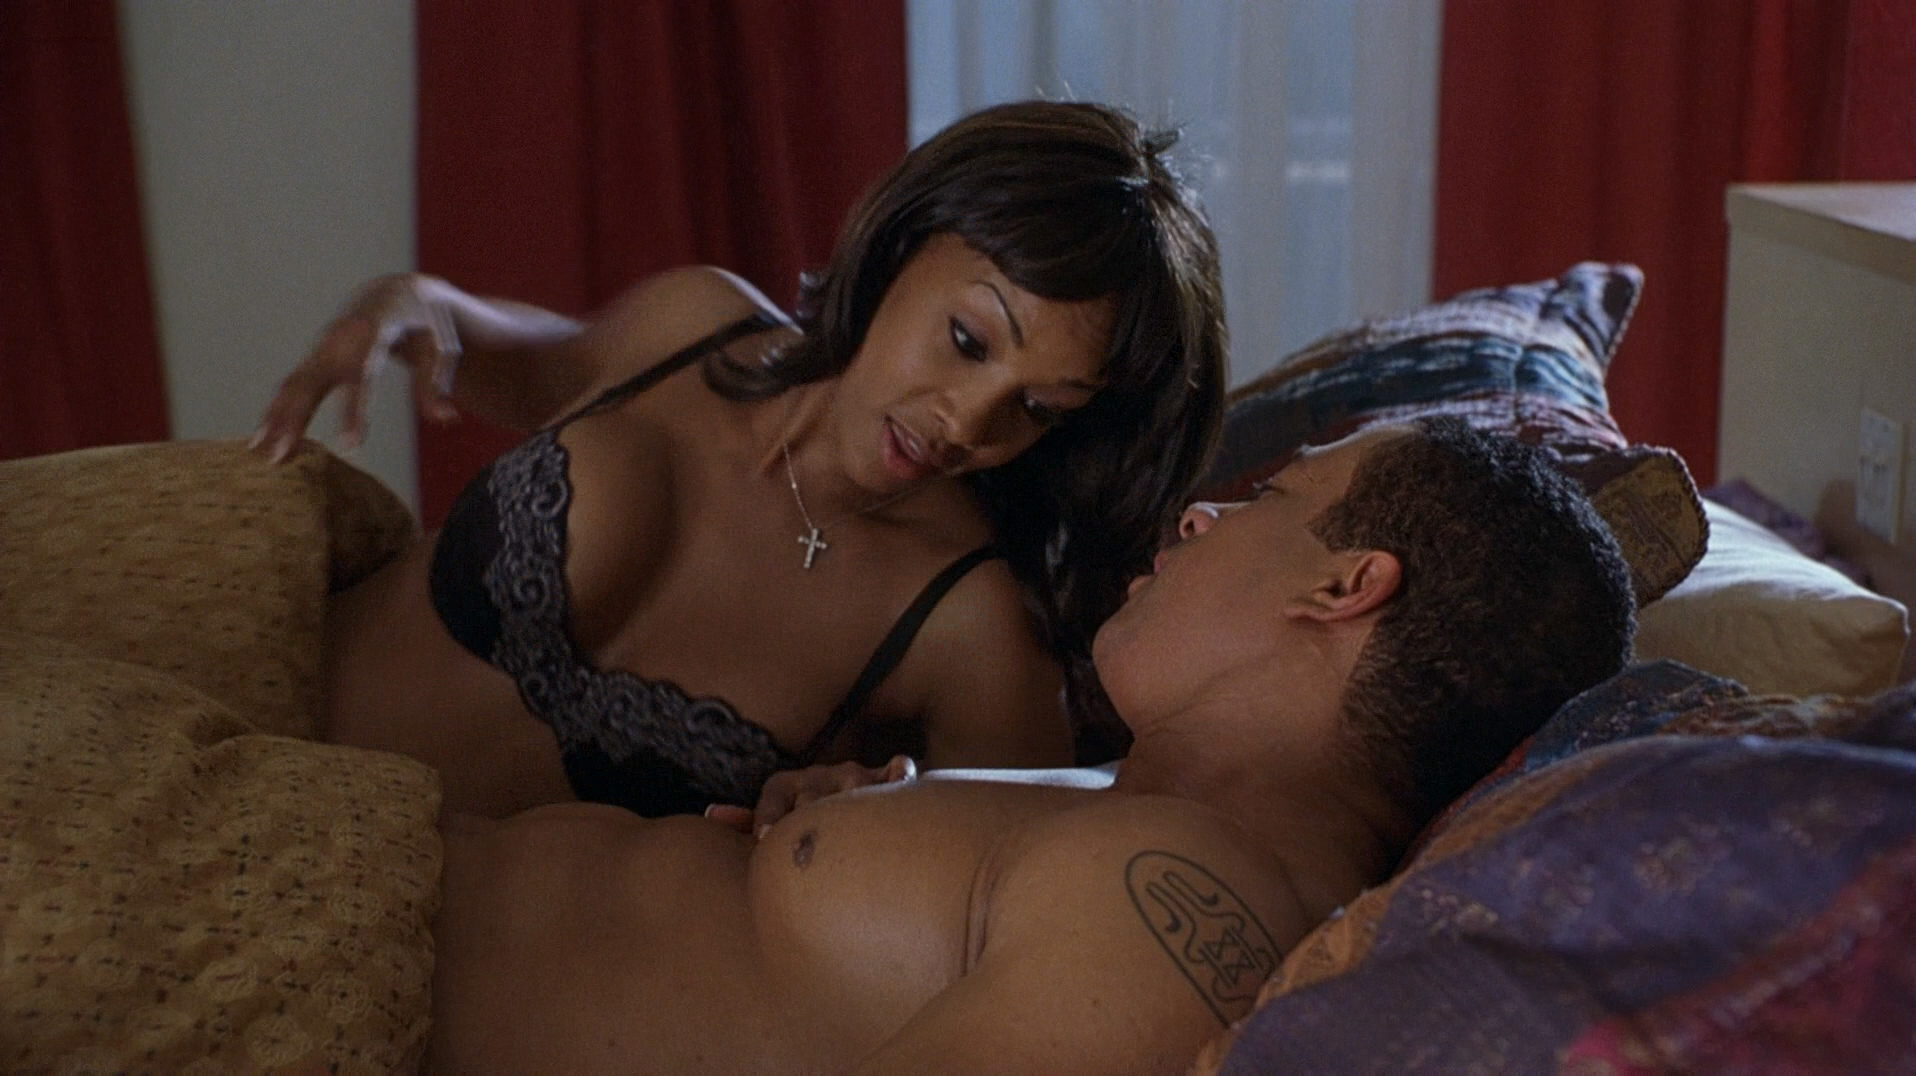 Vivica A. Fox hot in lingerie and Carmen Electra hot panties - Getting Played (2006) hd1080p Web-DL (11)